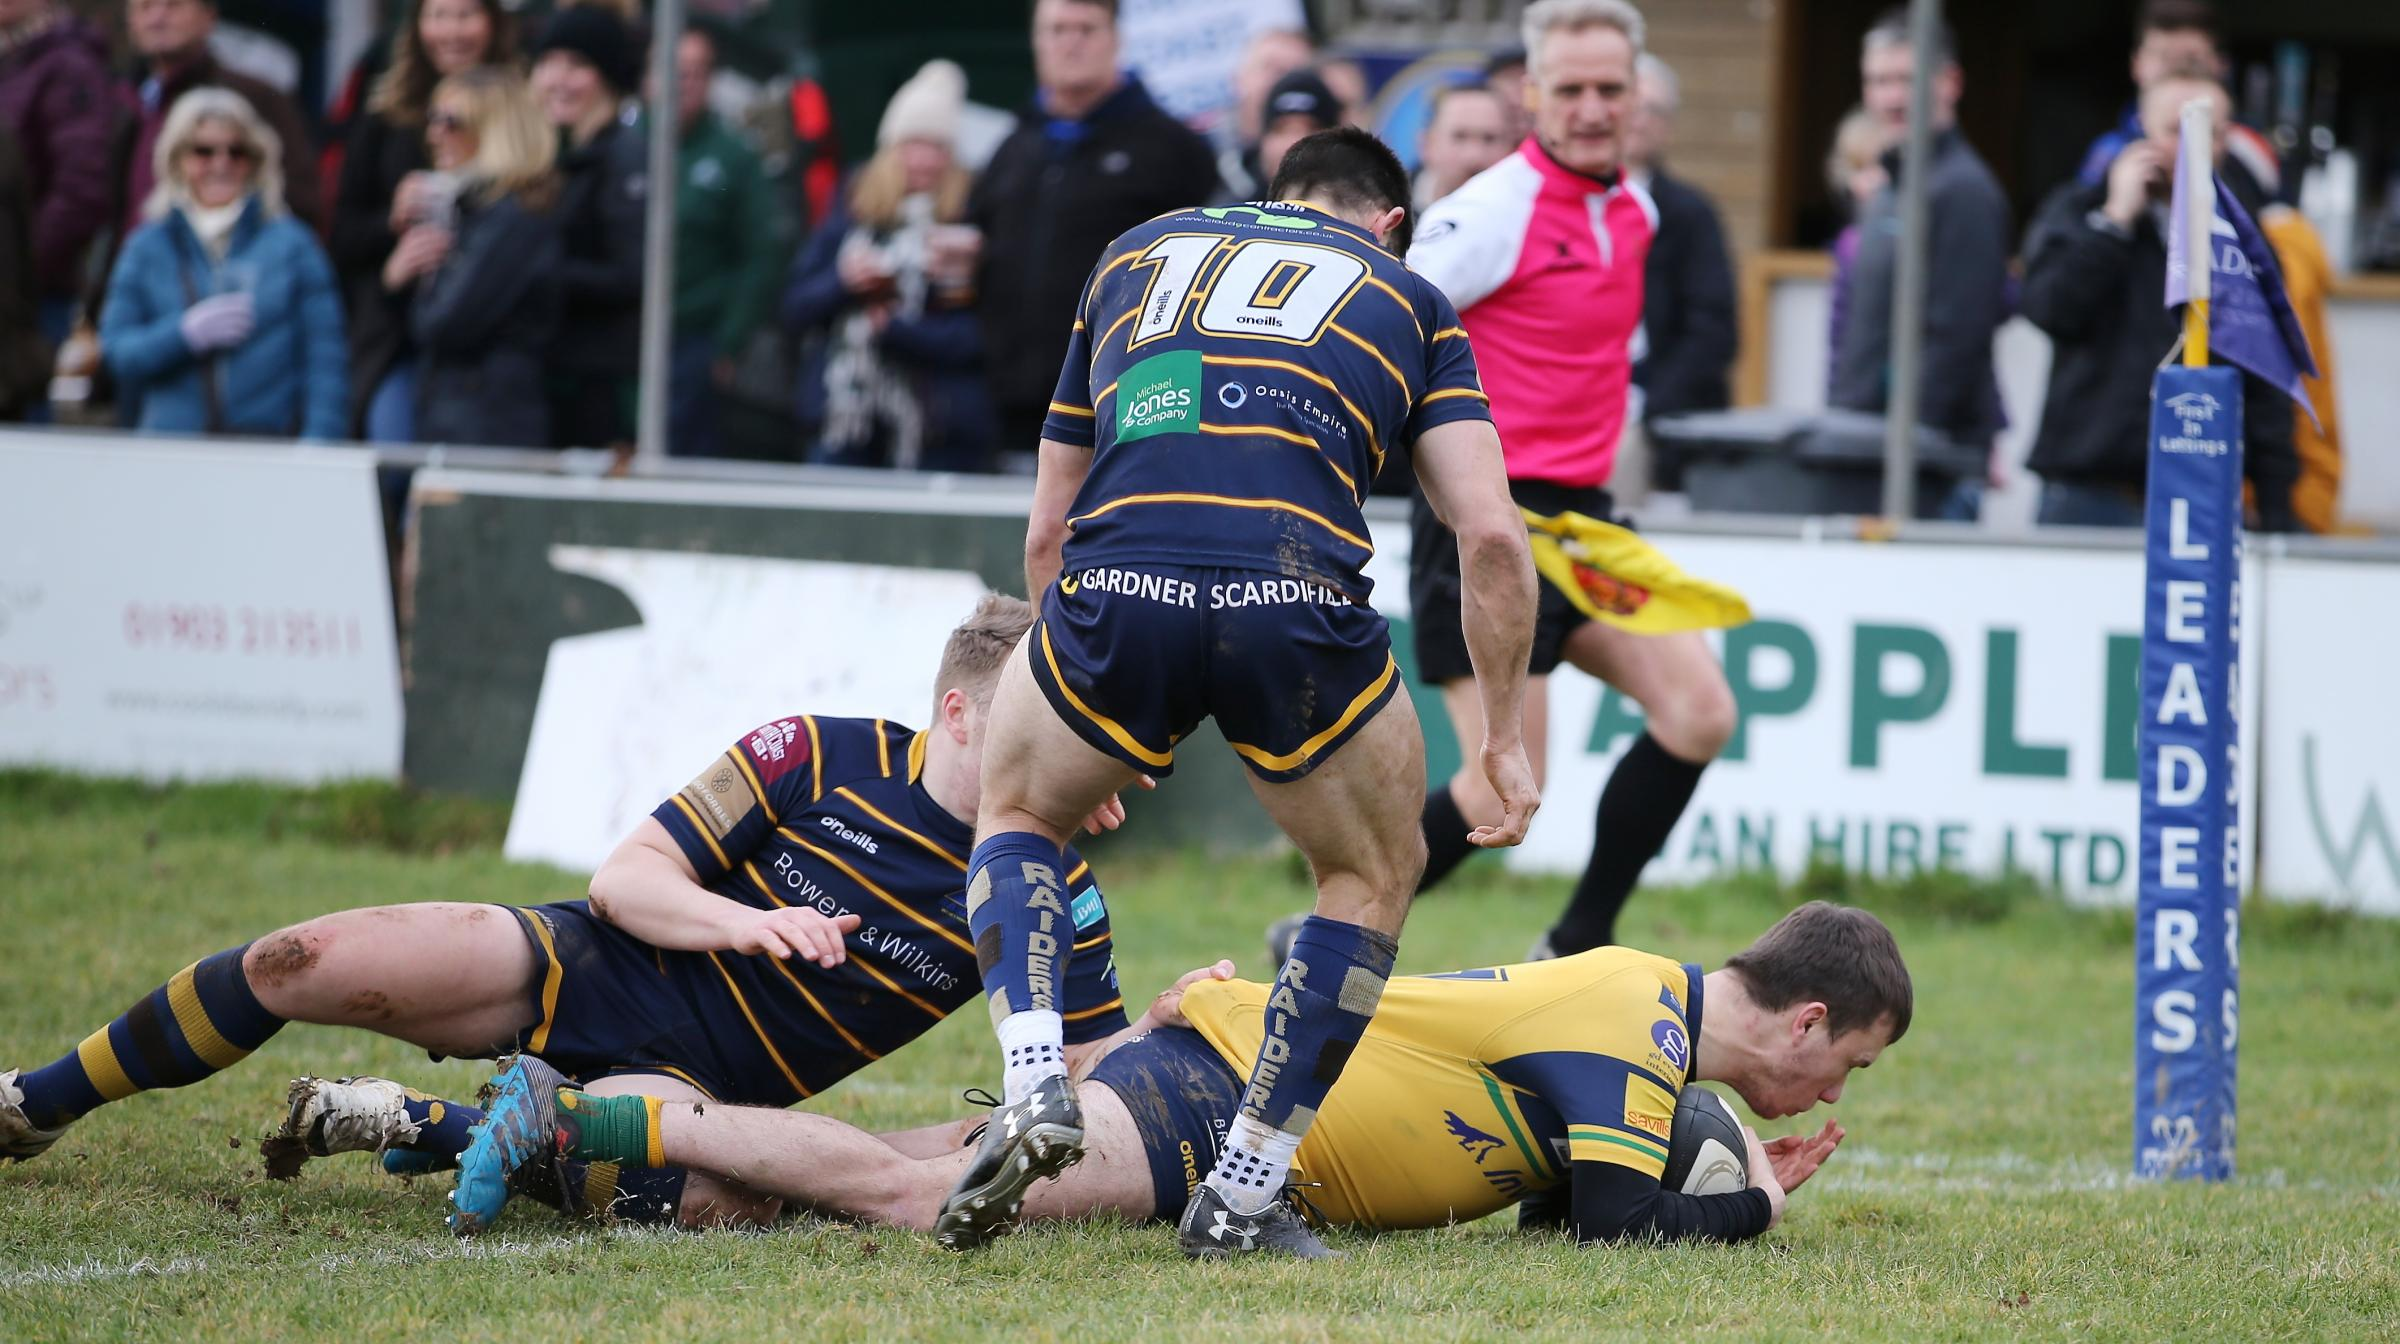 George Griffiths dives over for one of his three tries during Henley Hawks' win over Worthing Picture: Steve Karpa